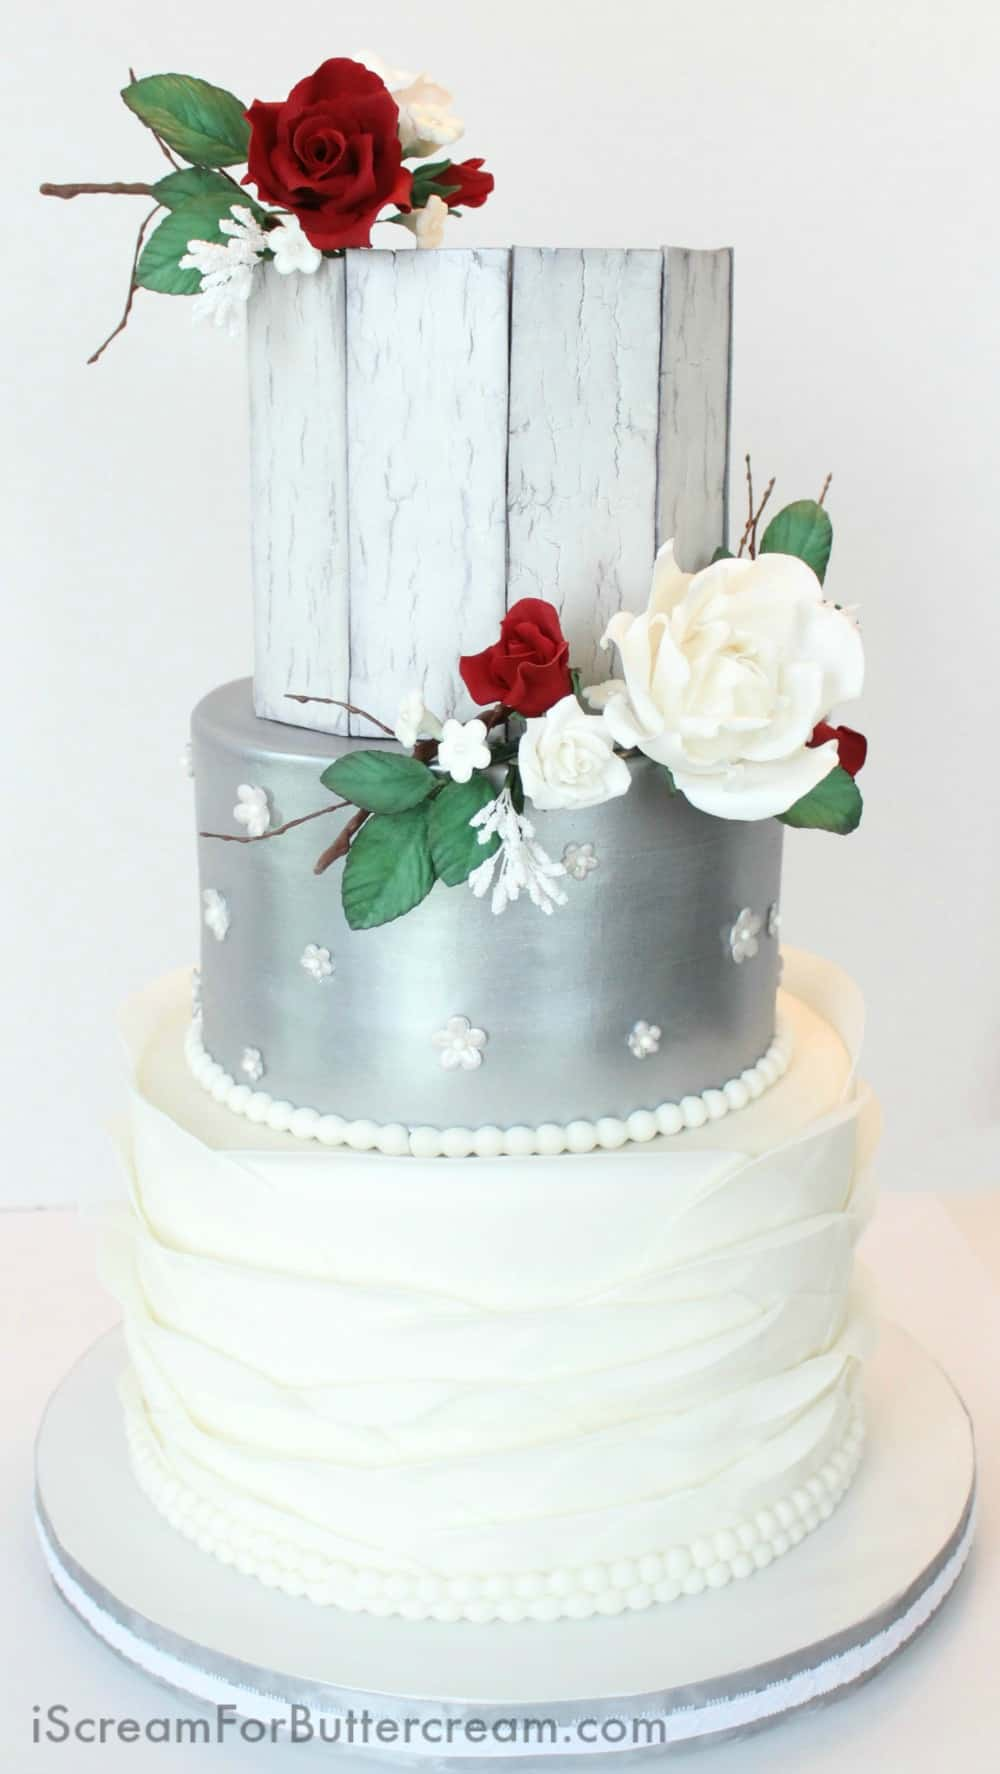 Elegant Rustic Silver Wedding Cake   I Scream for Buttercream Elegant Rustic Silver Wedding Cake